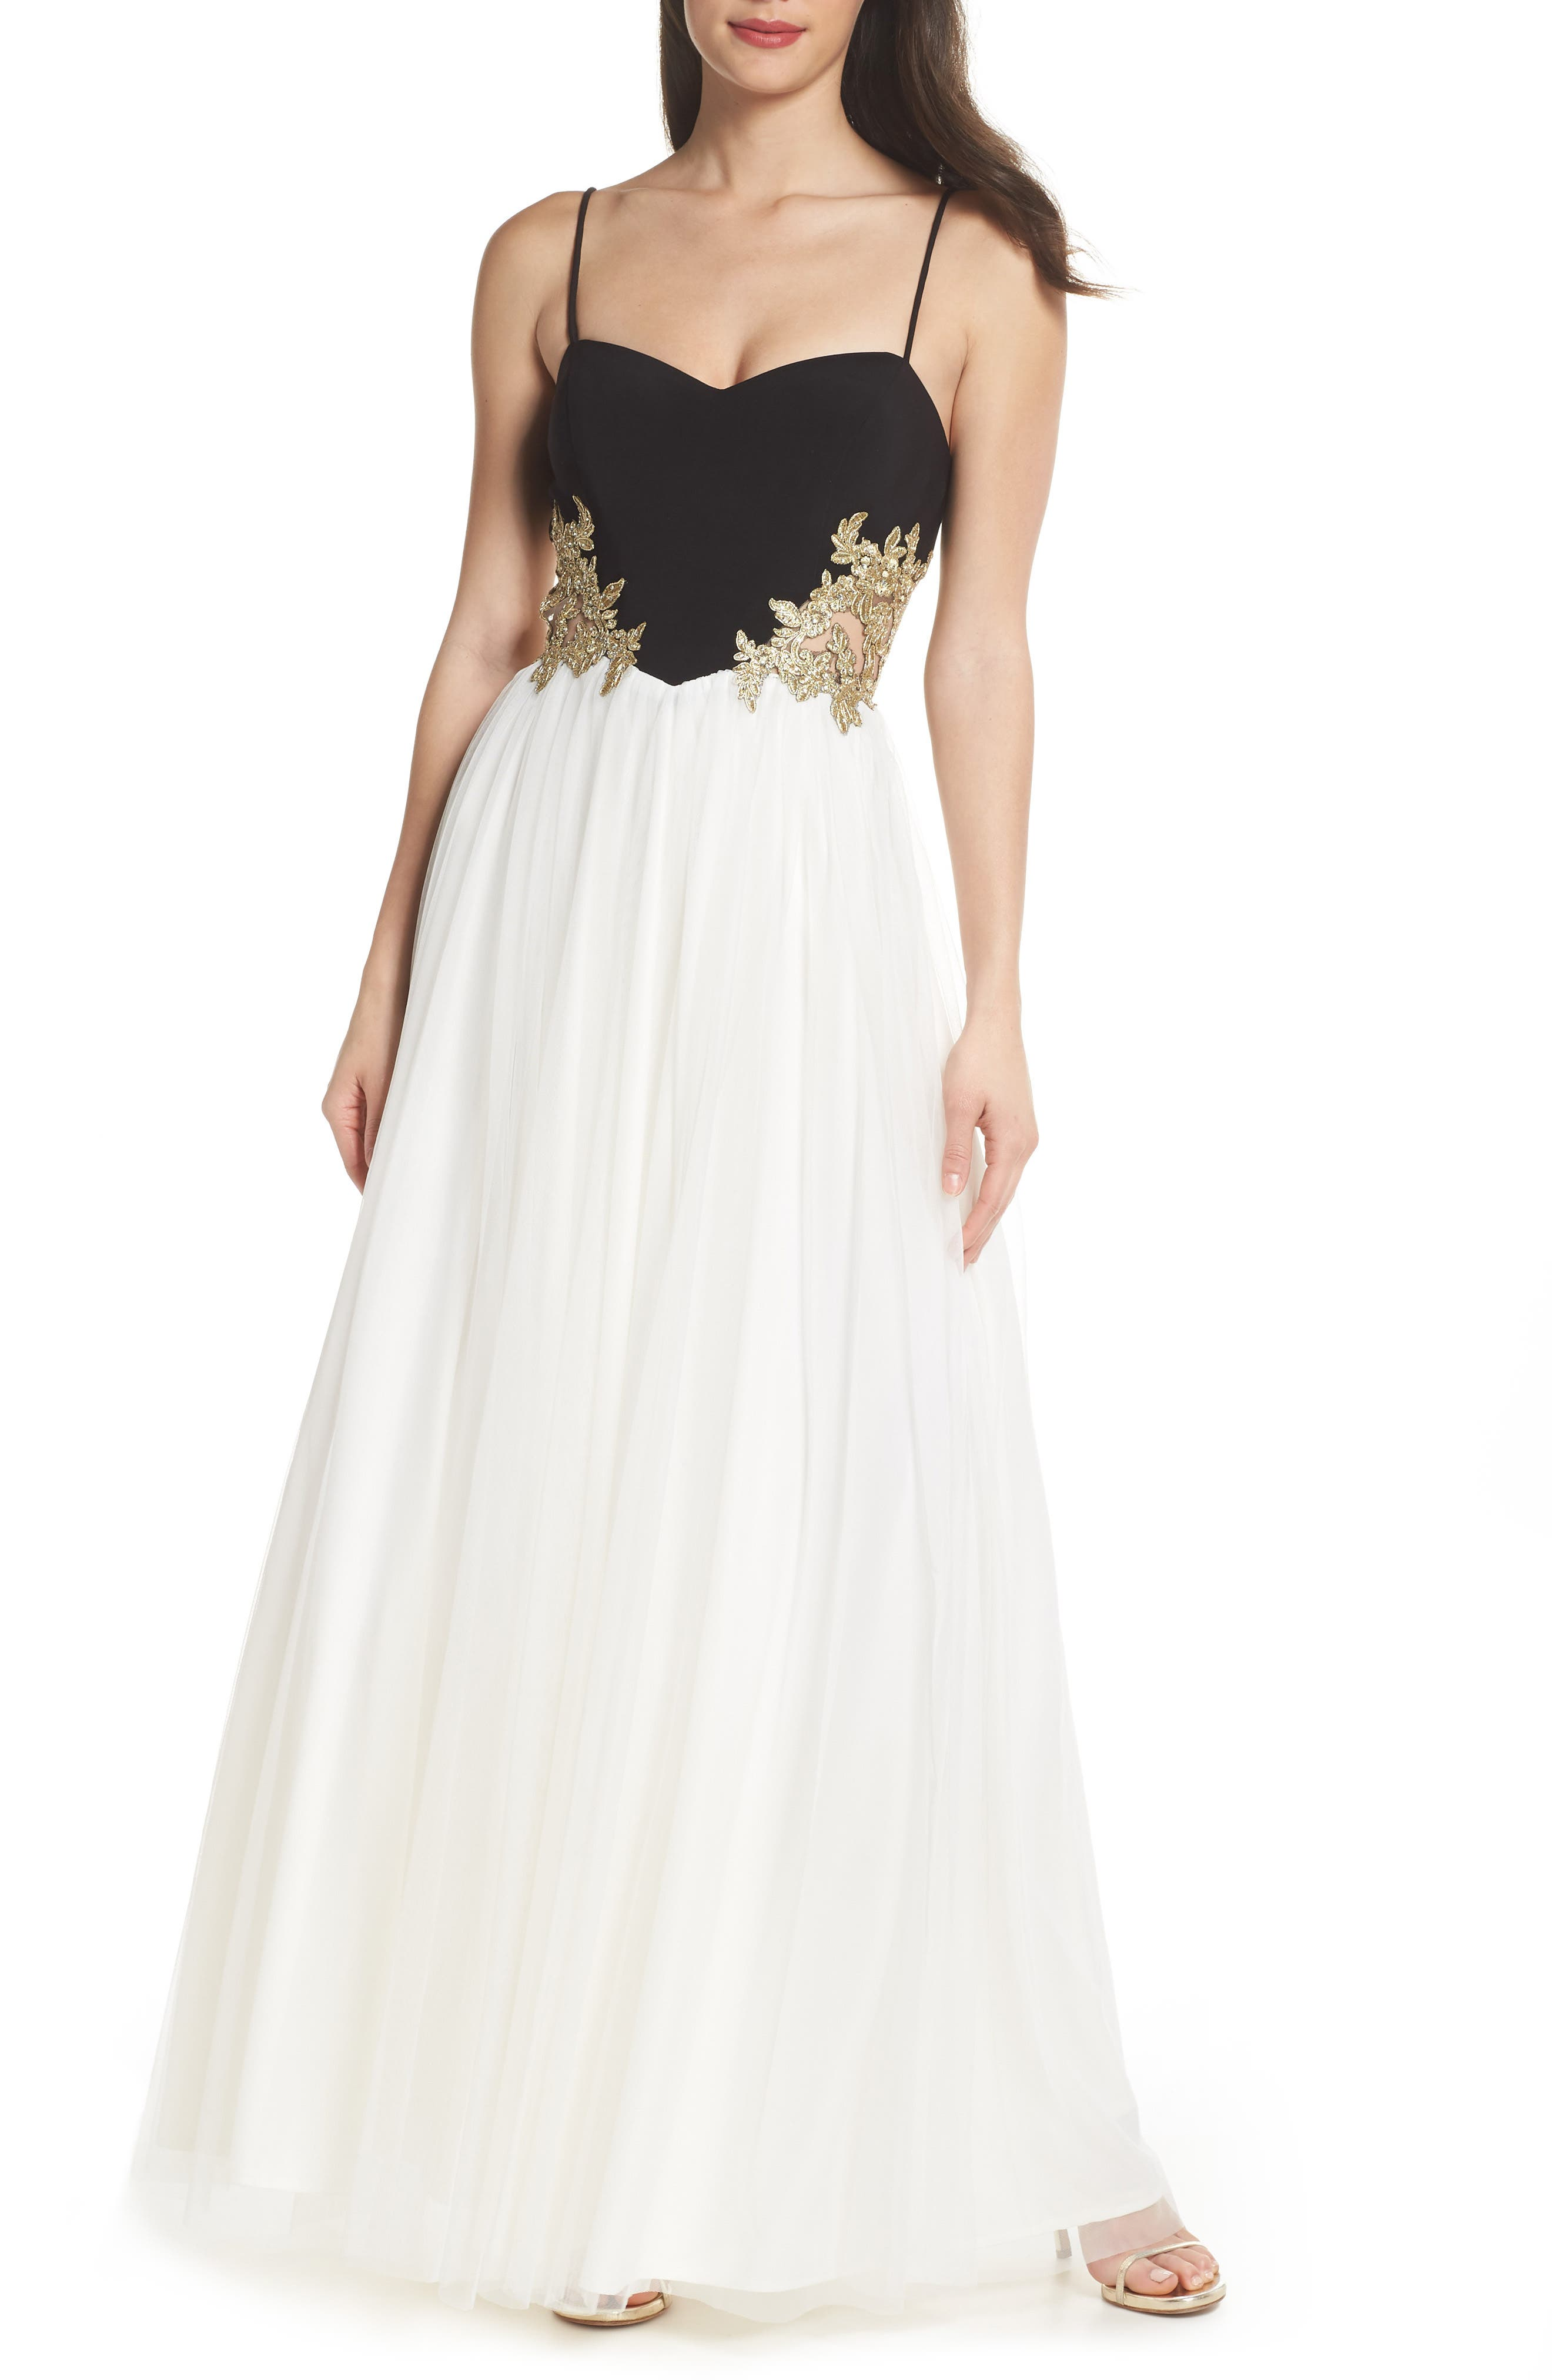 Blondie Nights Embellished Tulle Gown,                         Main,                         color, Black/ Ivory/ Gold